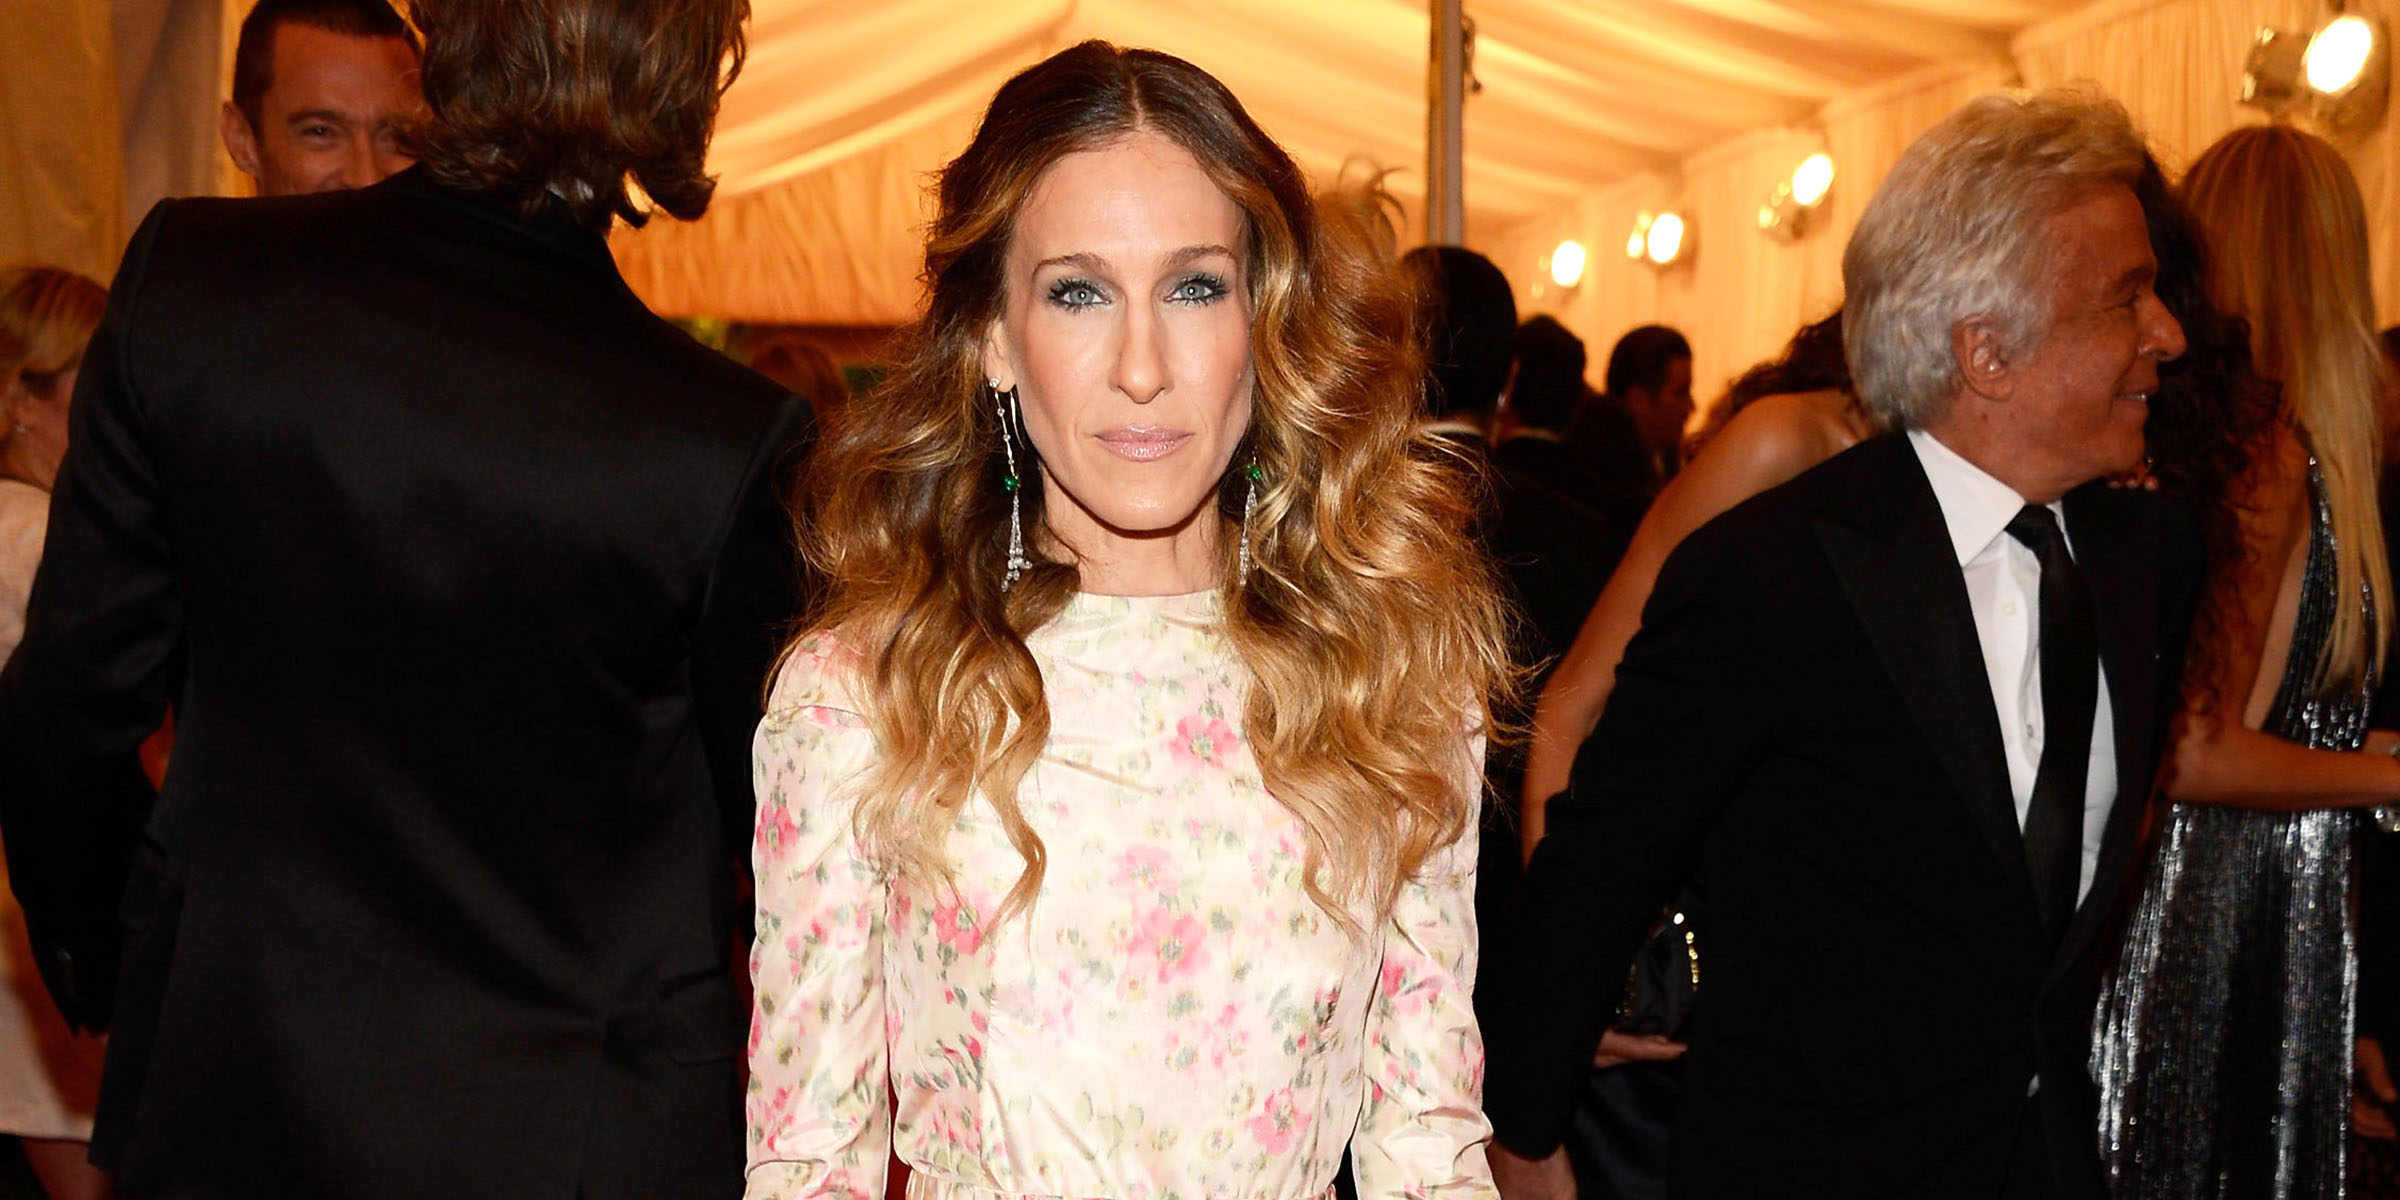 Sarah Jessica Parker recalls 'very big' male movie star who behaved